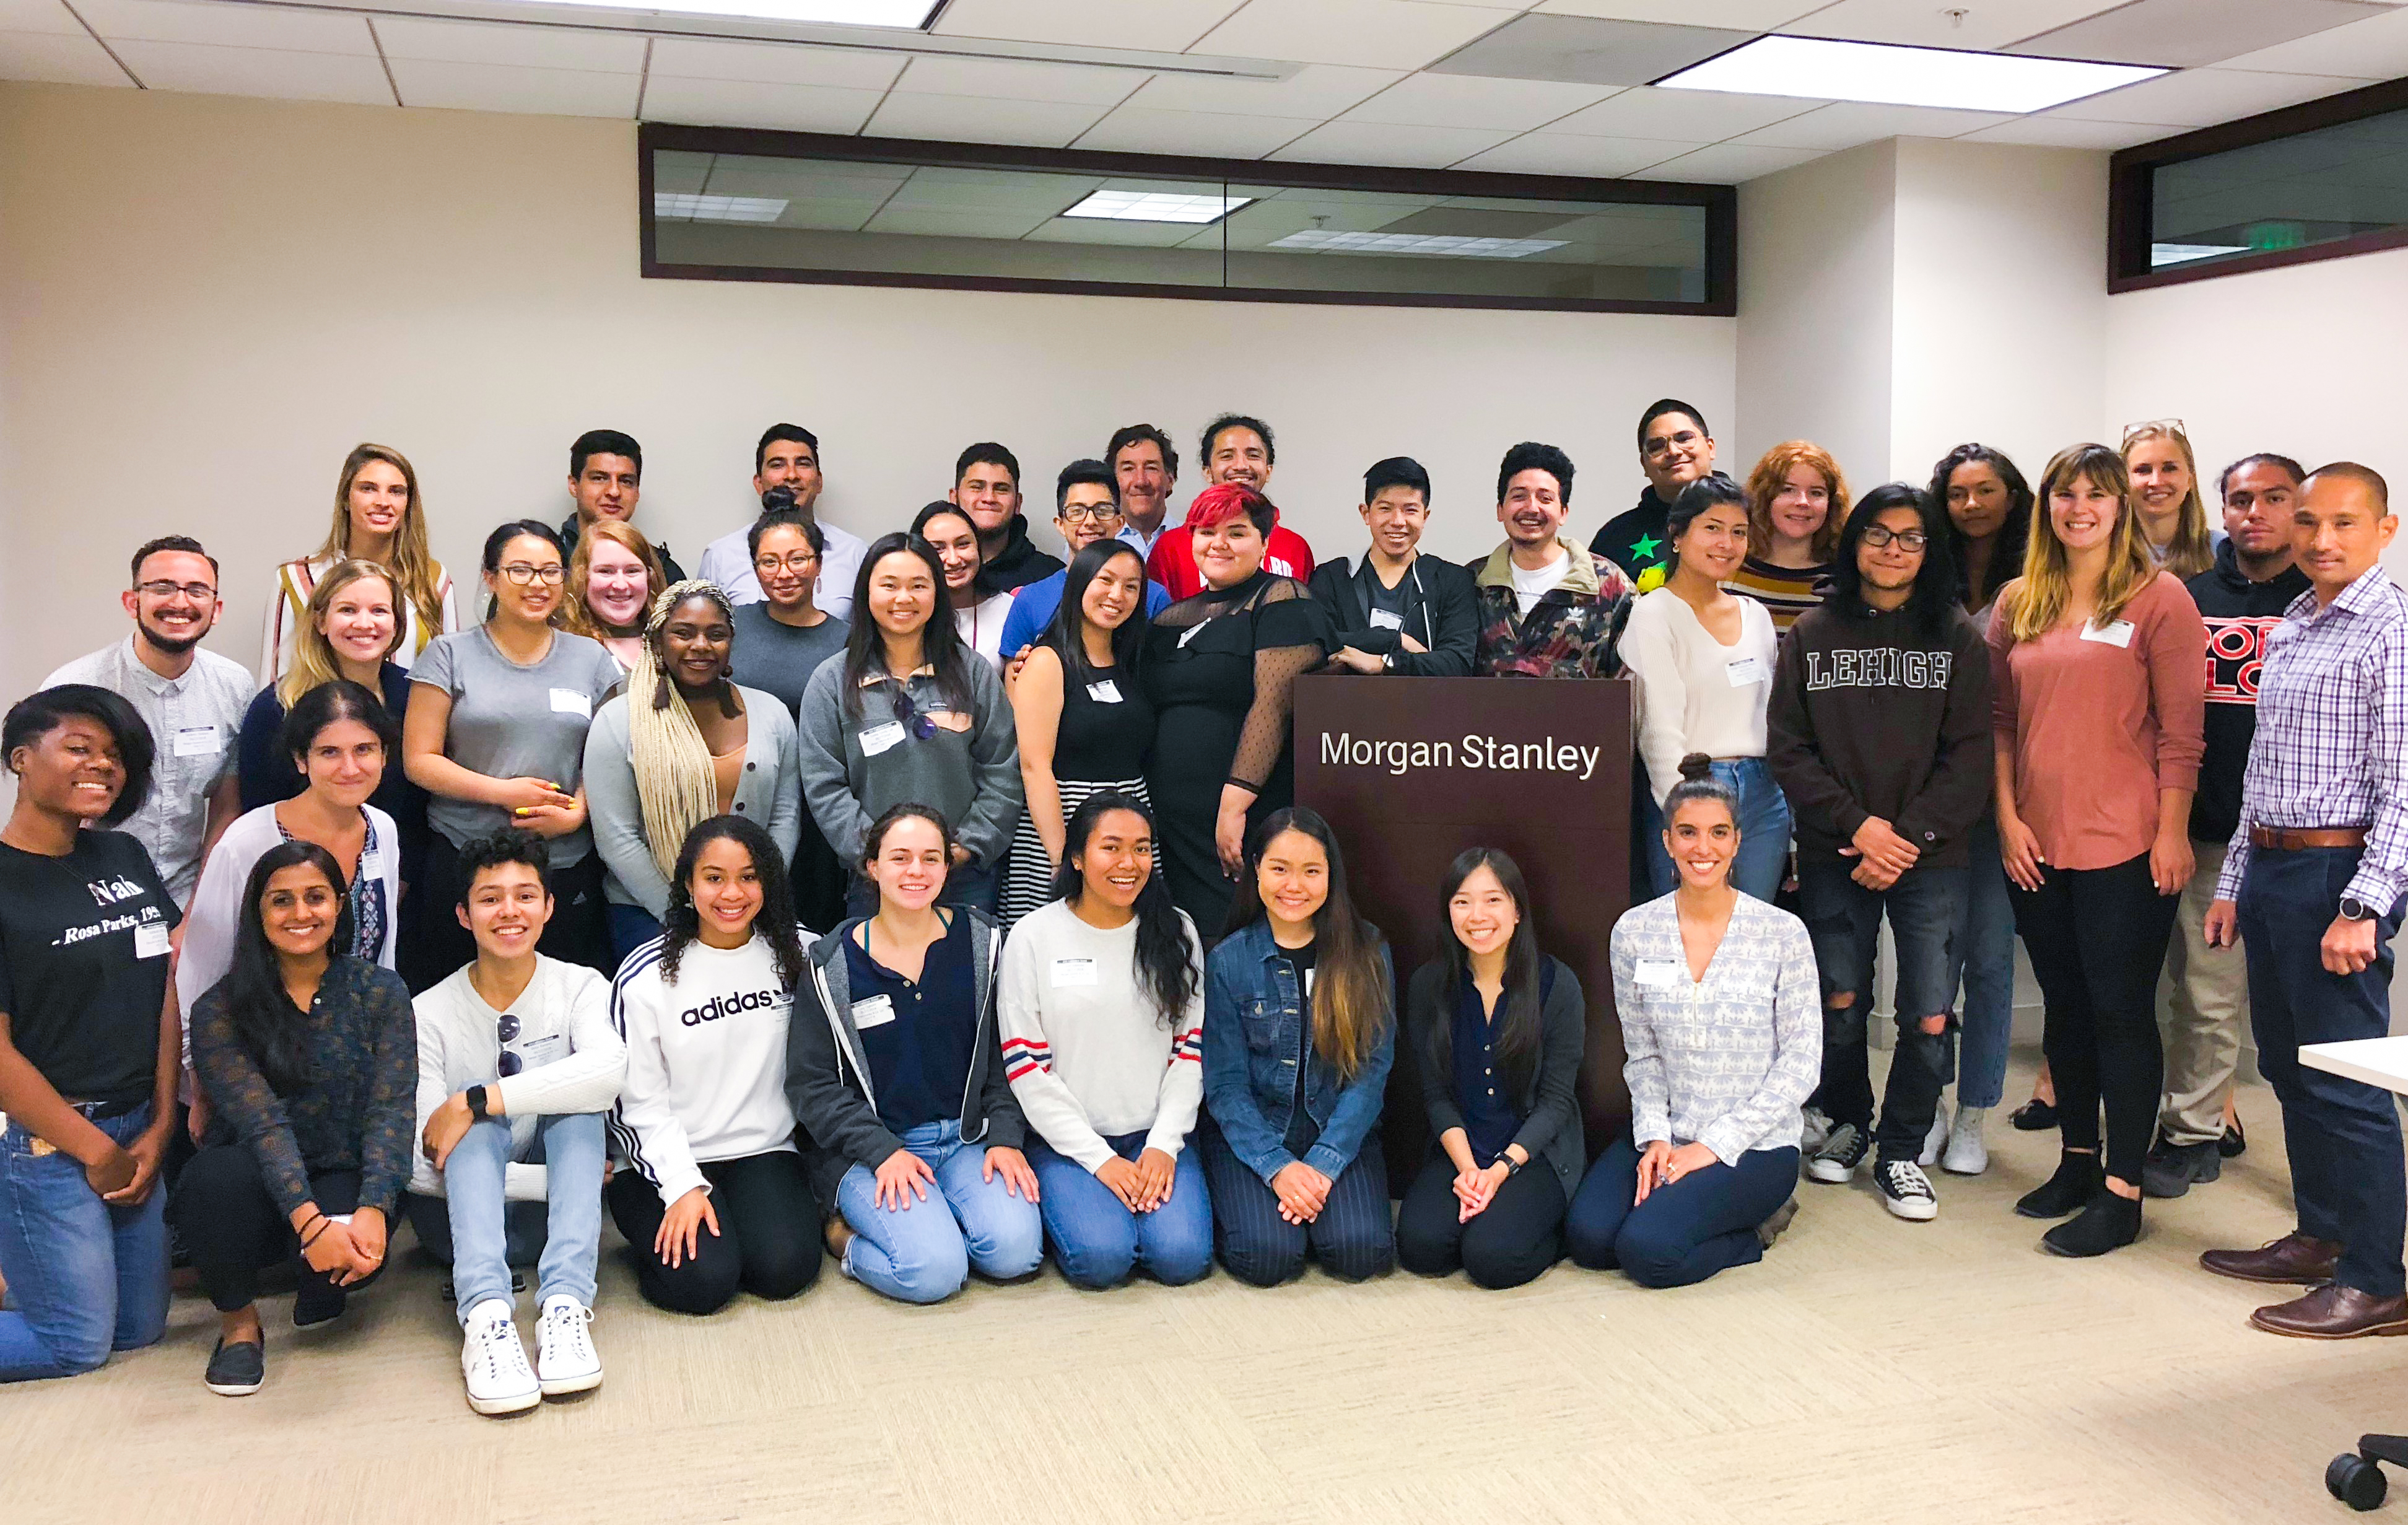 Morgan Stanley Hosts Event On How to Succeed in College | The Posse